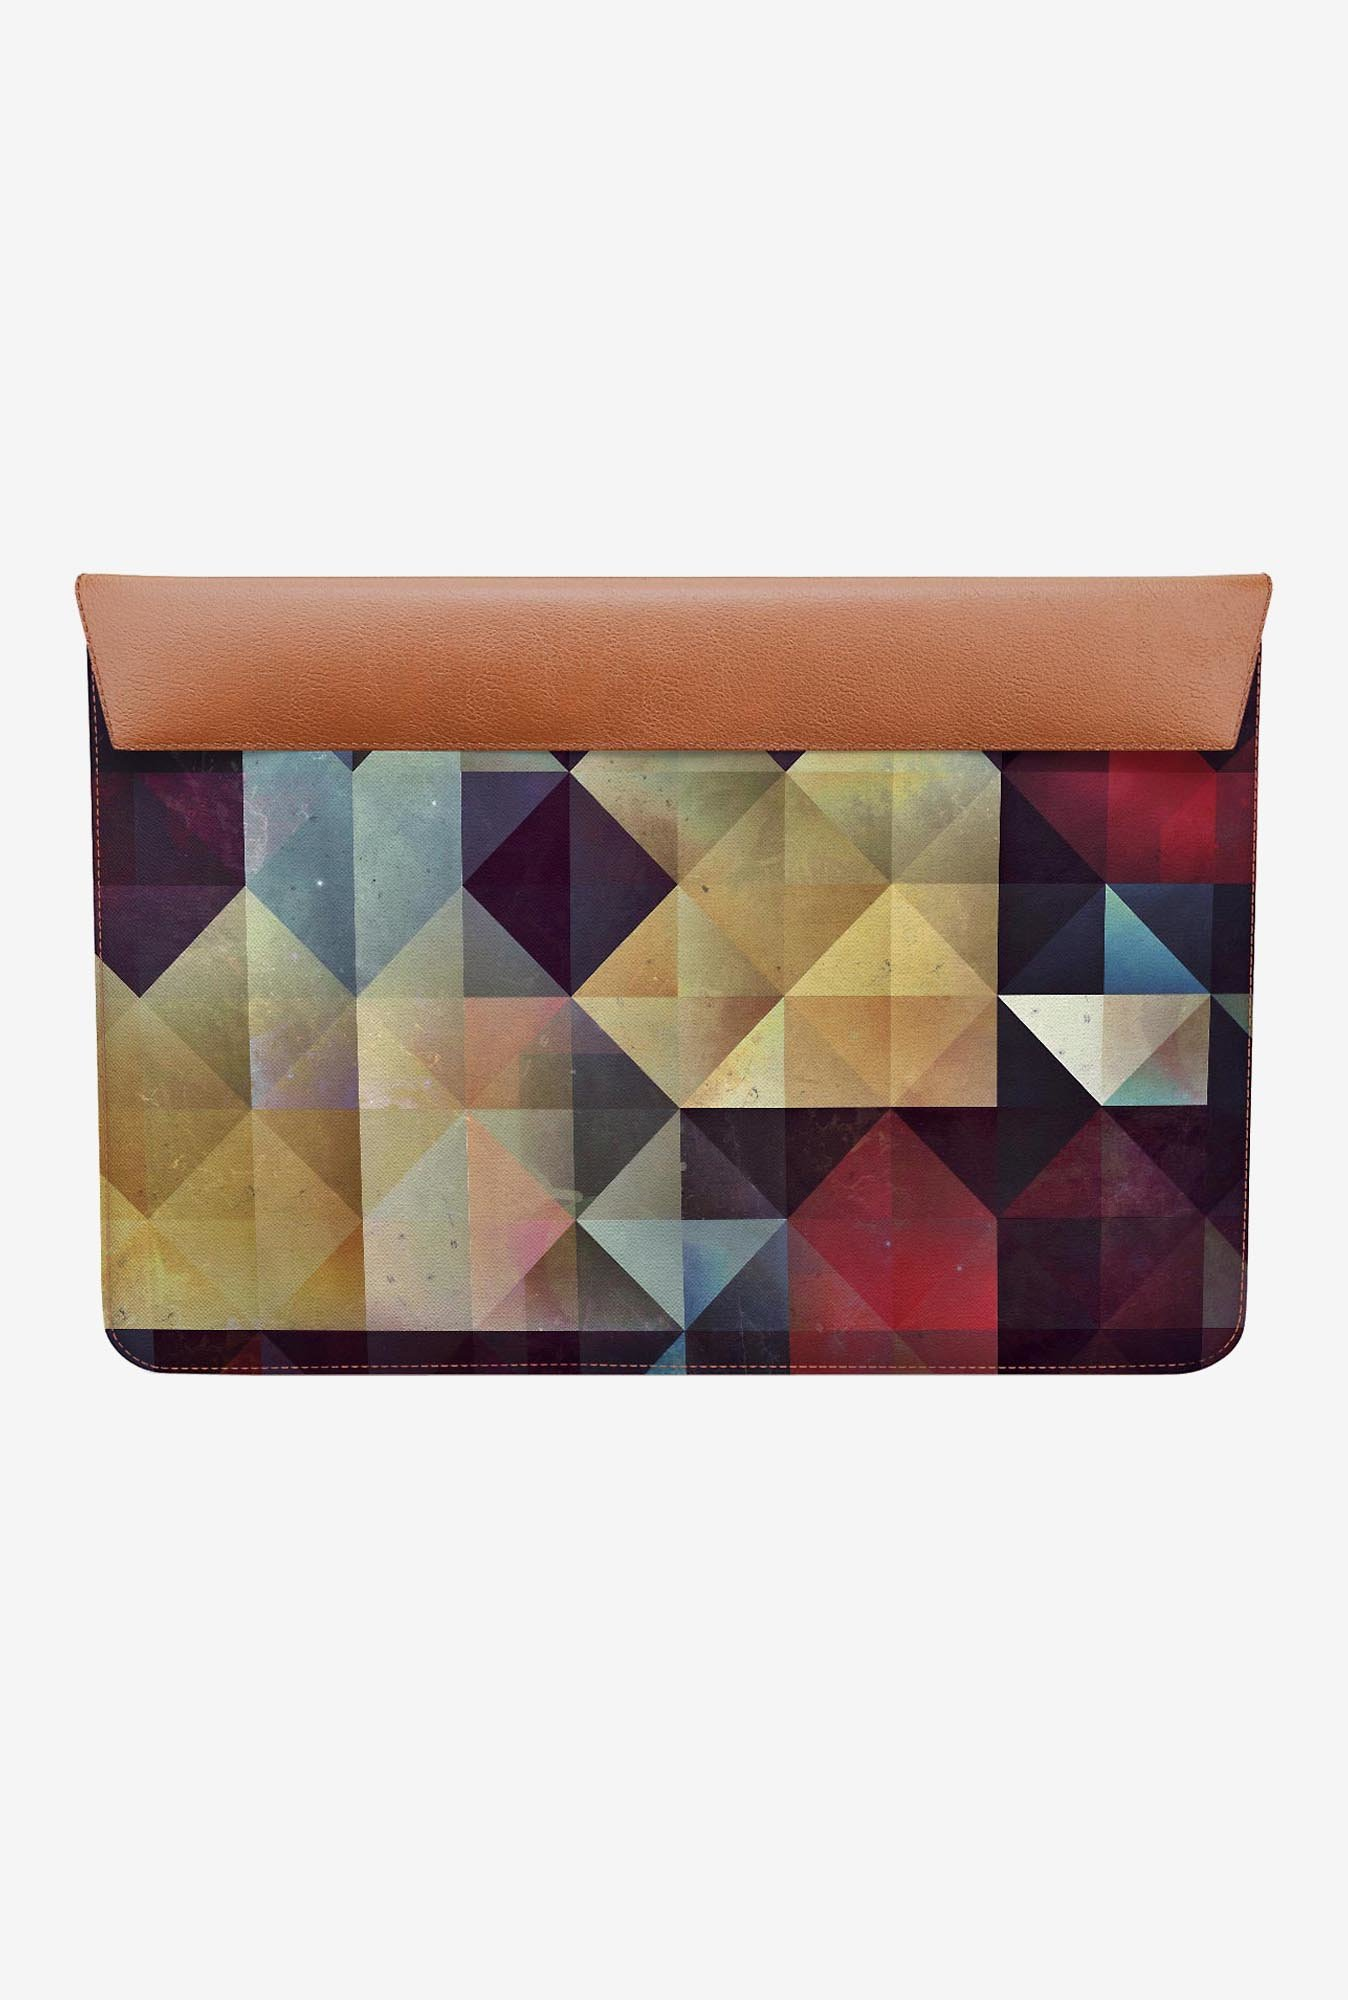 DailyObjects th stwyk MacBook Air 11 Envelope Sleeve